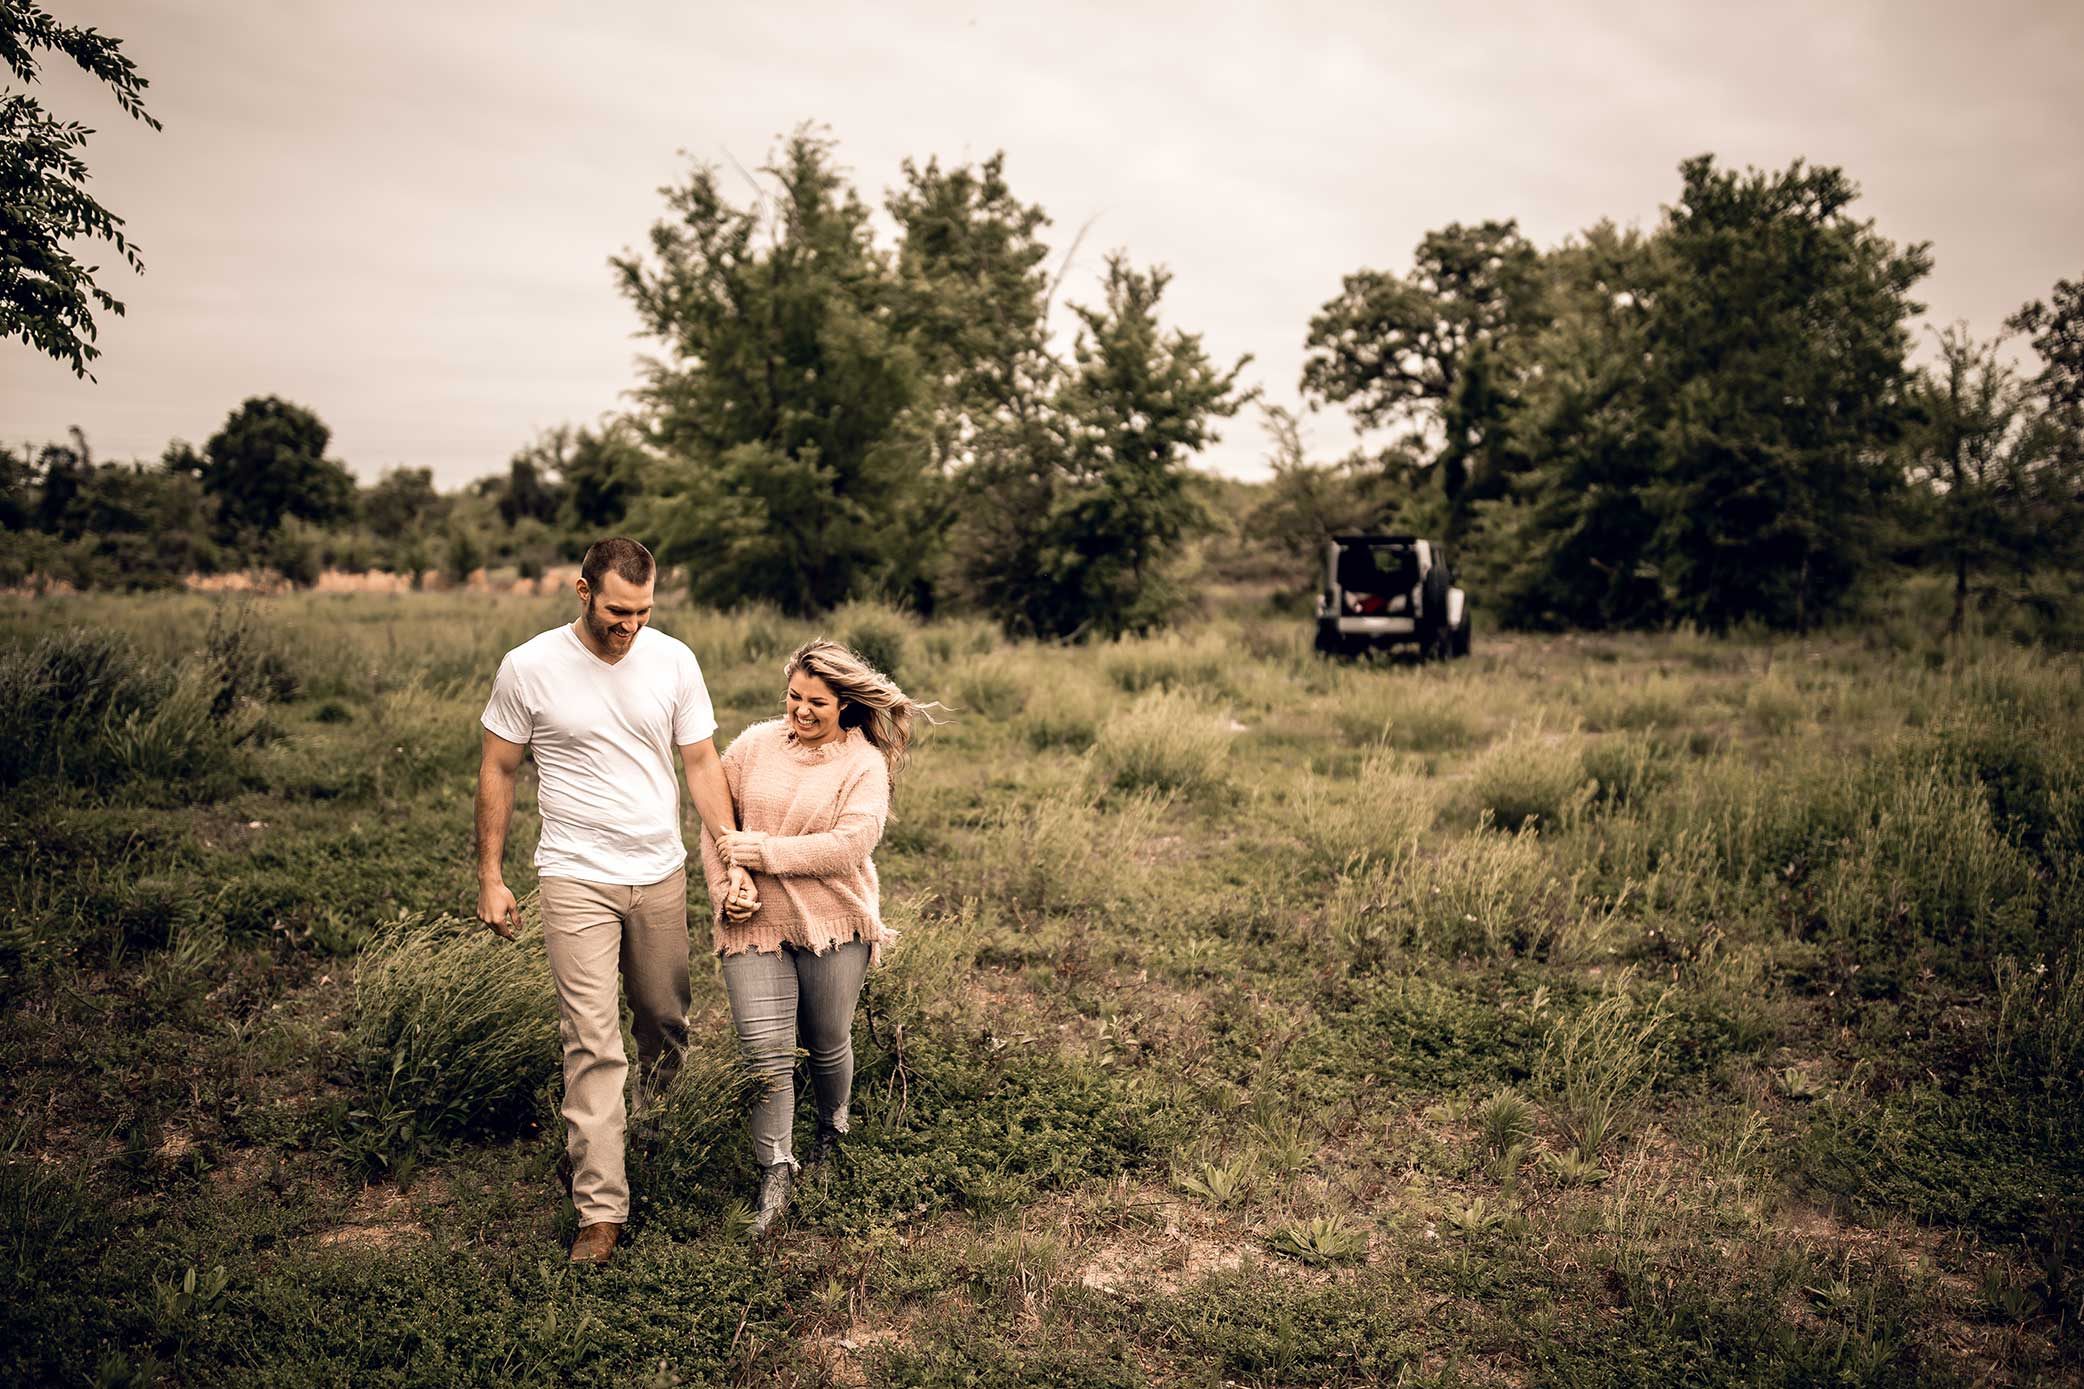 shelby-schiller-photography-lifestyle-couples-remi-colt-outdoor-jeep-adventure-46.jpg